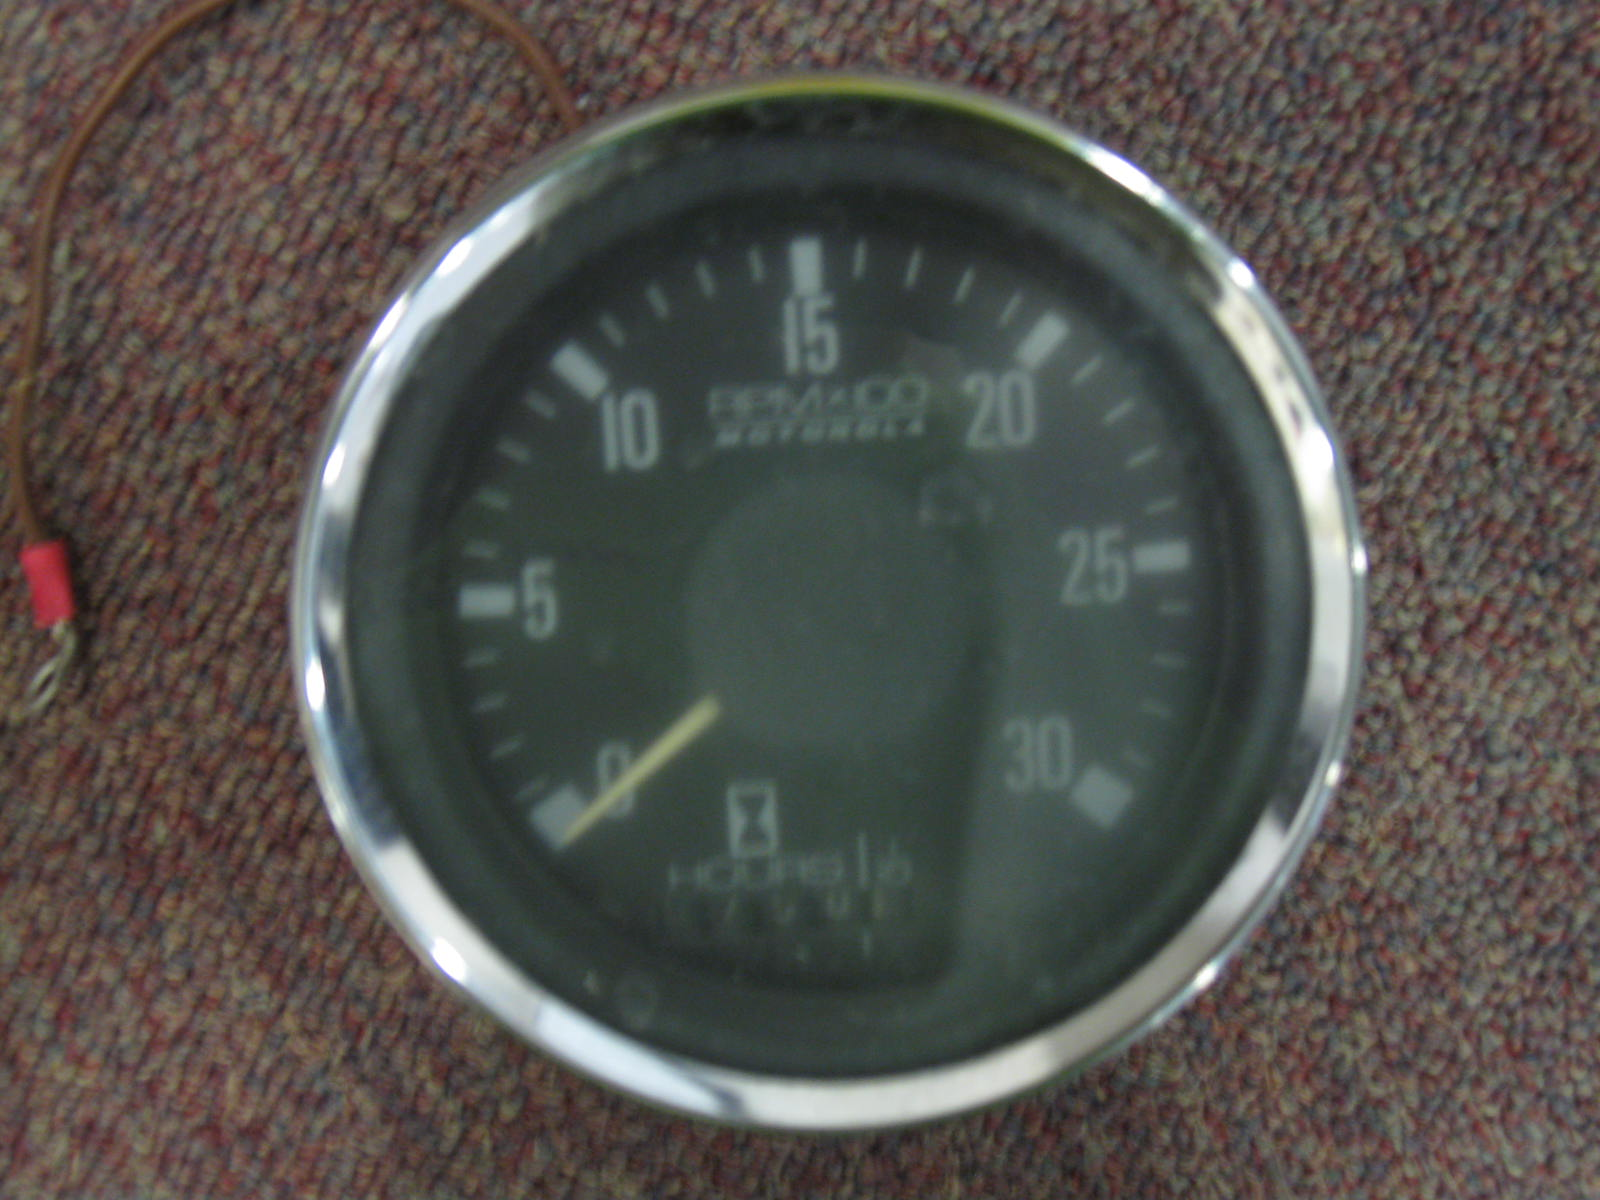 I Have A Motorola Tachometer Off A 50 Hp Perkins Diesel Engine  Was Connected To Alternator